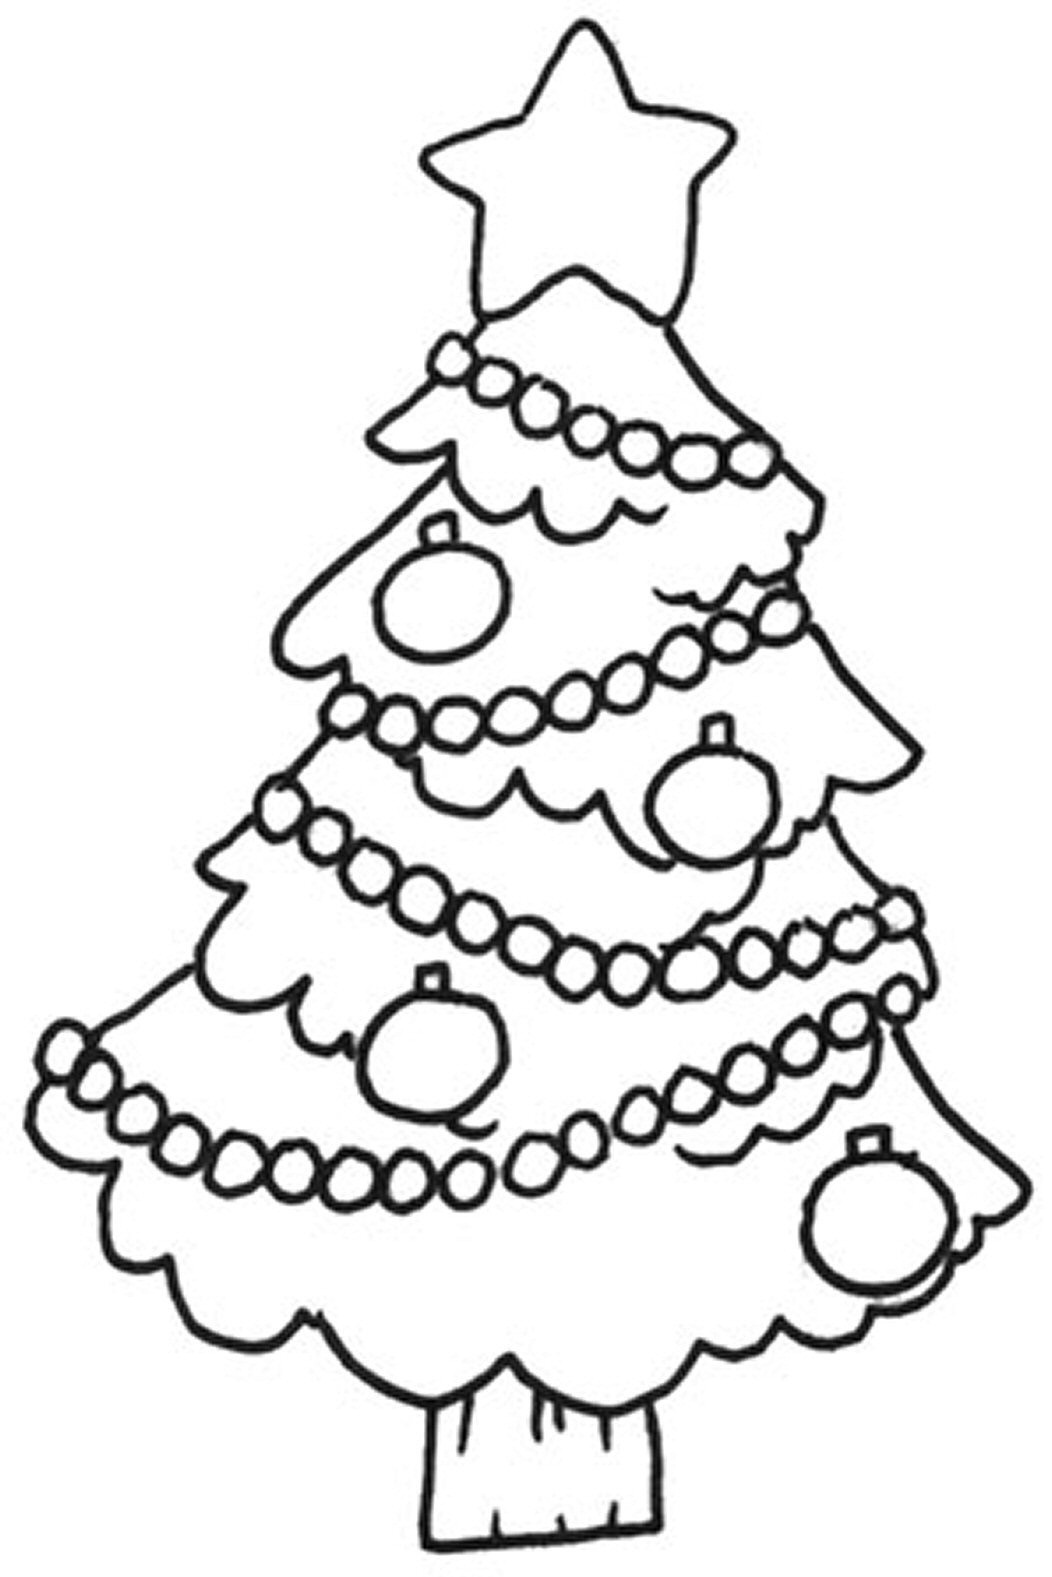 christmas tree coloring pages 015 moreover Christmas Trees Coloring Pages as well  further Blank Christmas Tree Coloring Page furthermore  additionally  additionally  together with christmas tree coloring pages coloring book 33 as well tree also 8gTe7Rnid further . on christmas tree coloring pages